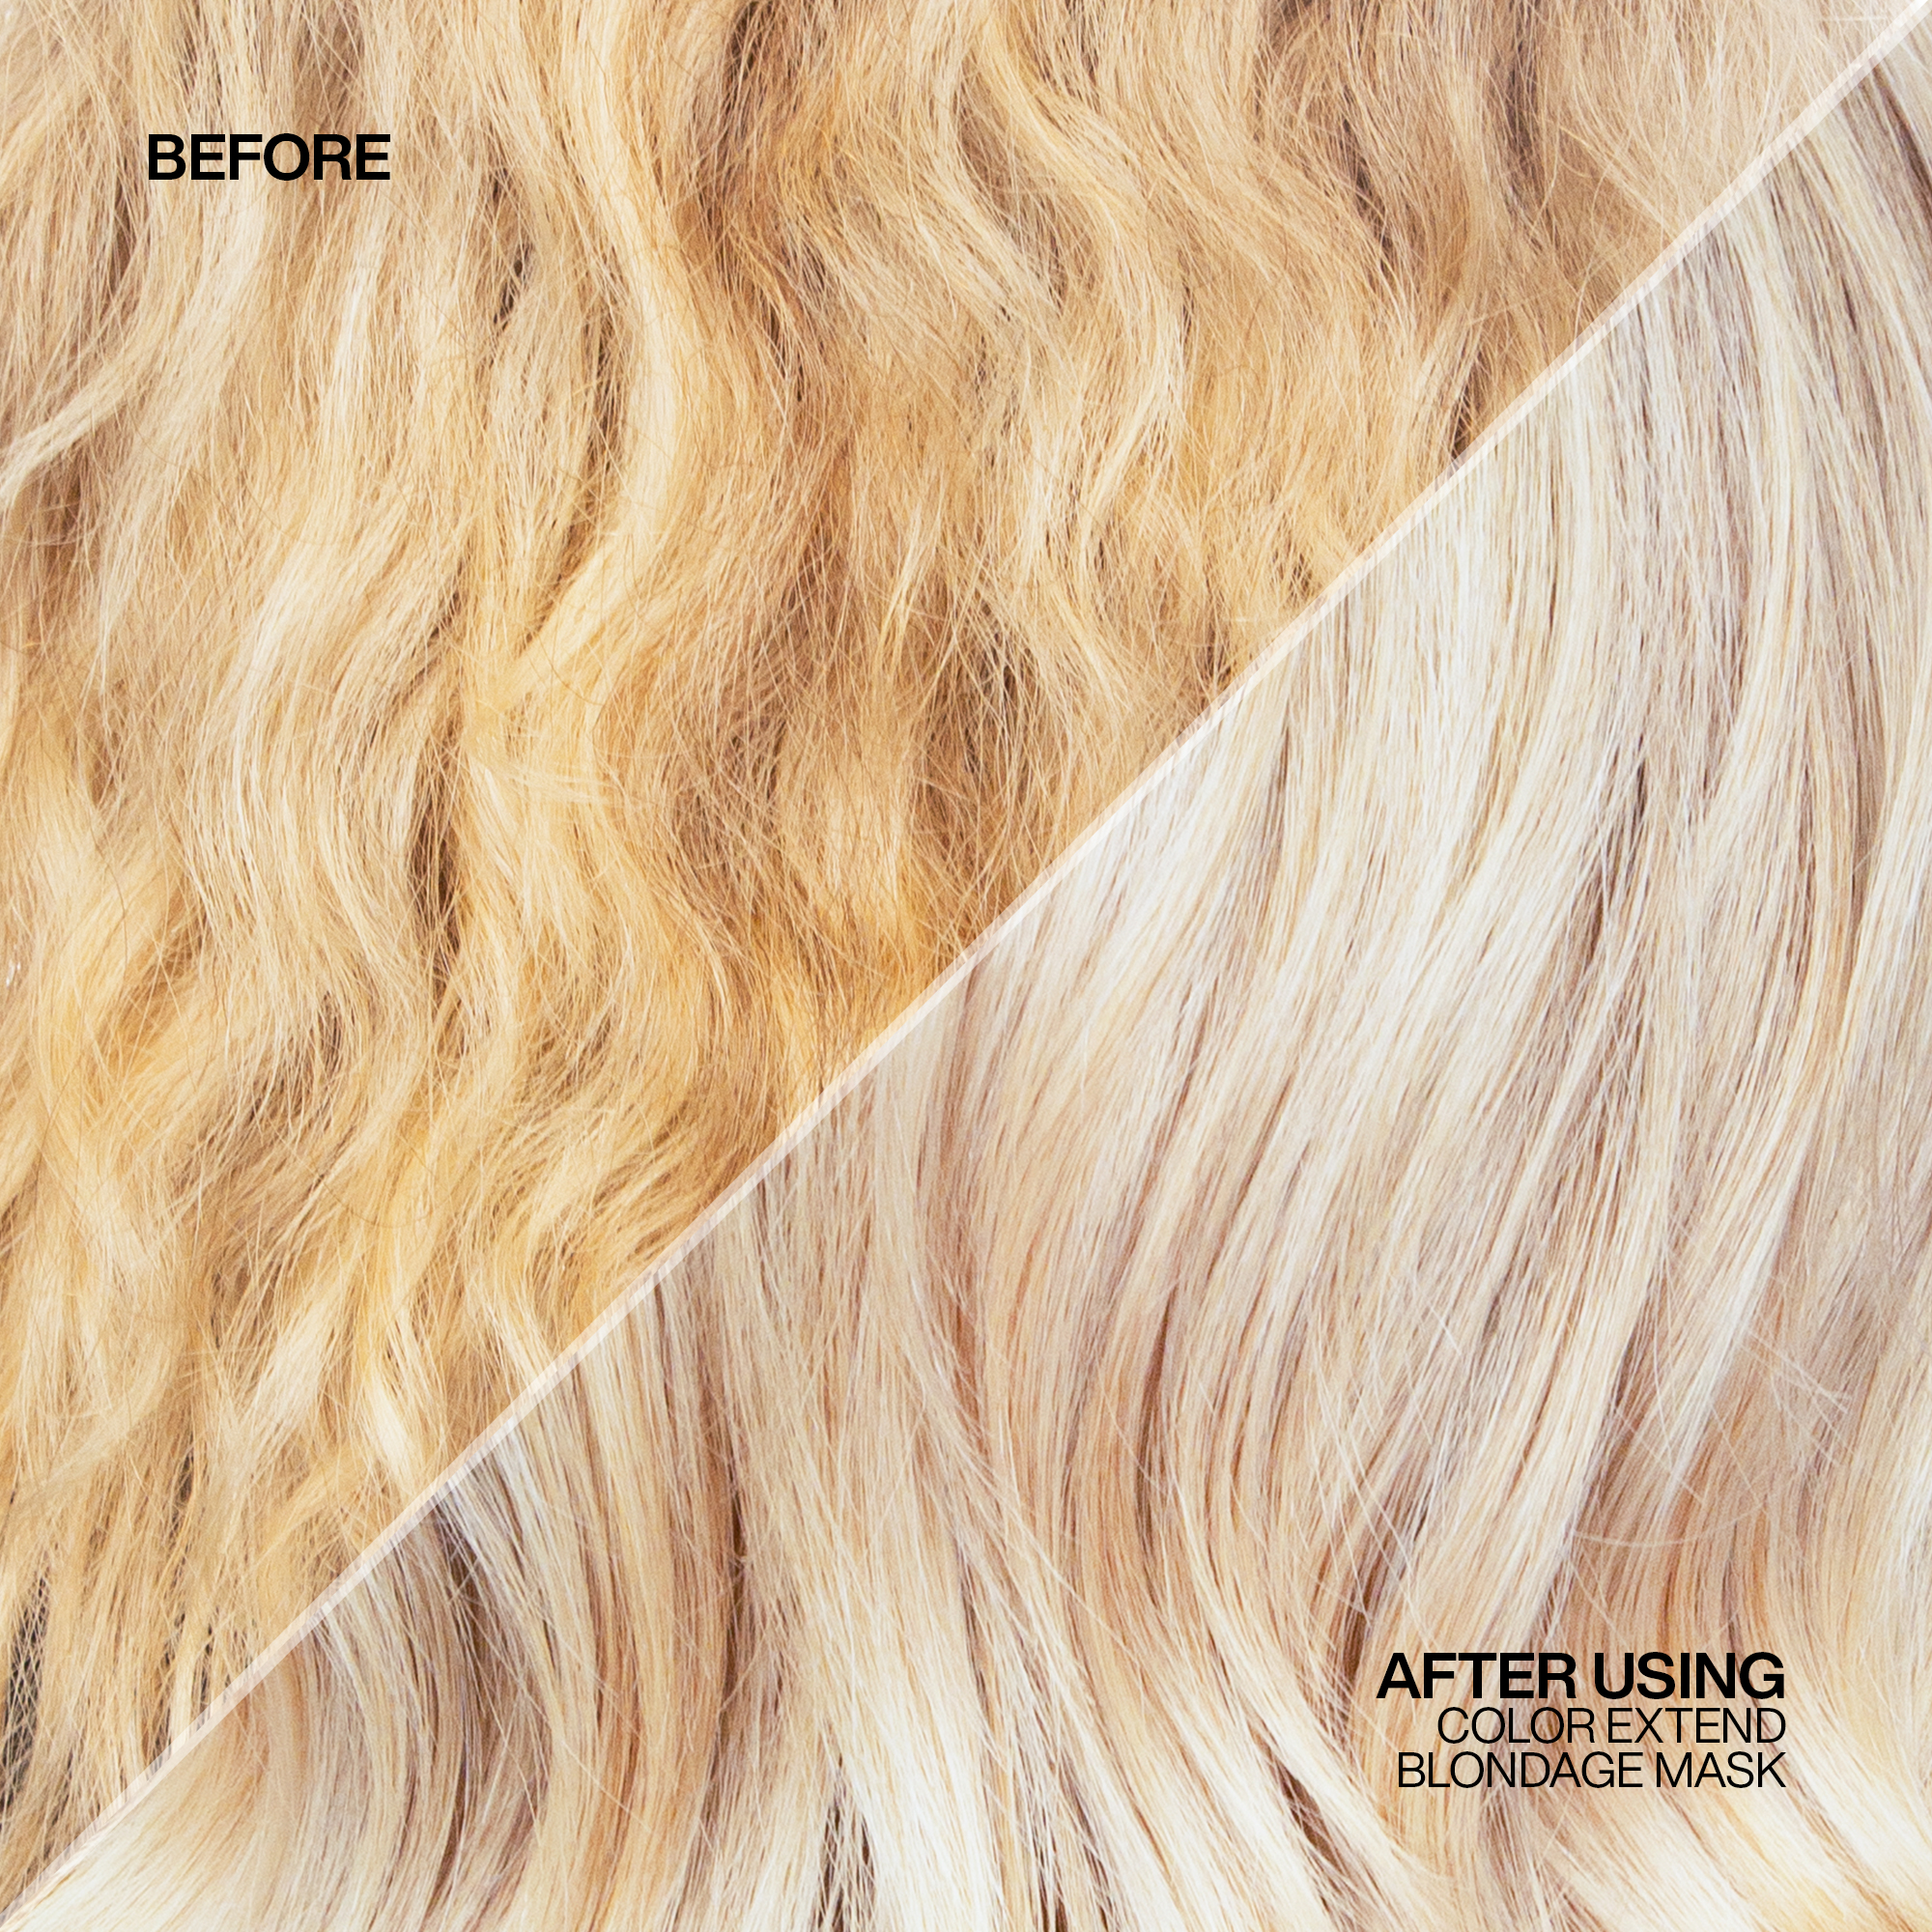 A woman's blonde hair before and after using Redken Color Extend Blondage Purple Shampoo